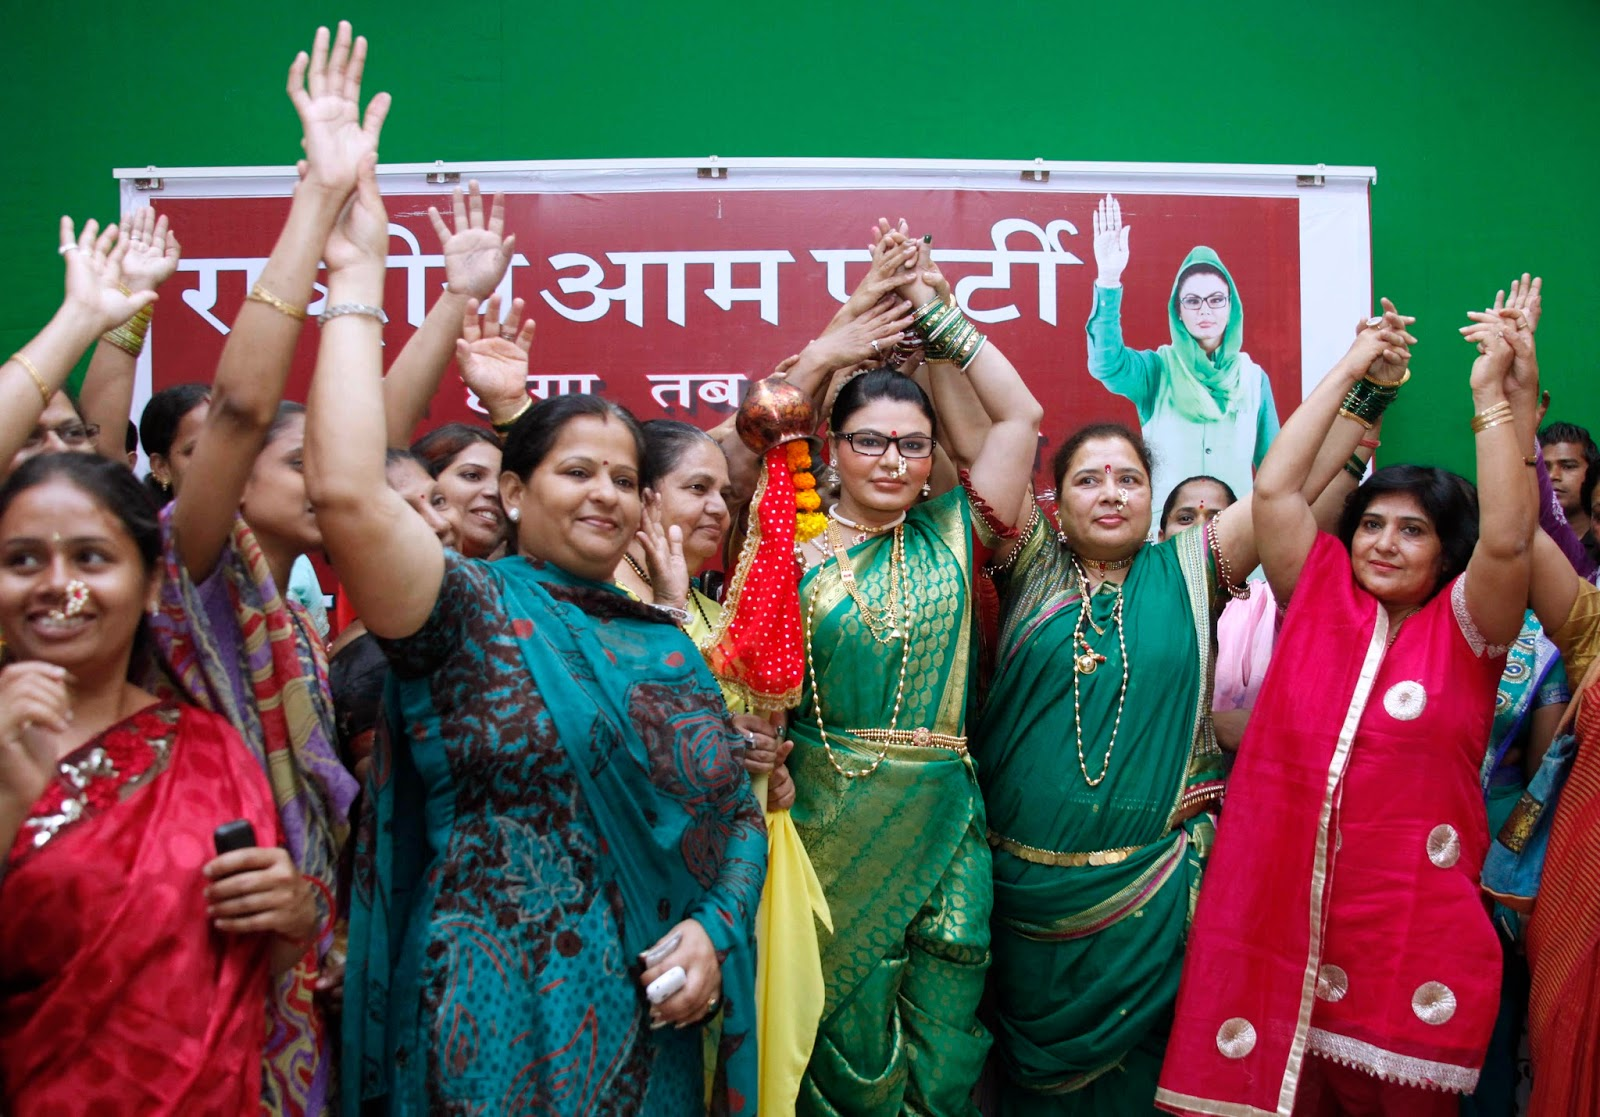 http://www.notchmag.com/photo/24464/rakhi-sawant-celebrates-gudi-padwa-in-mumbai